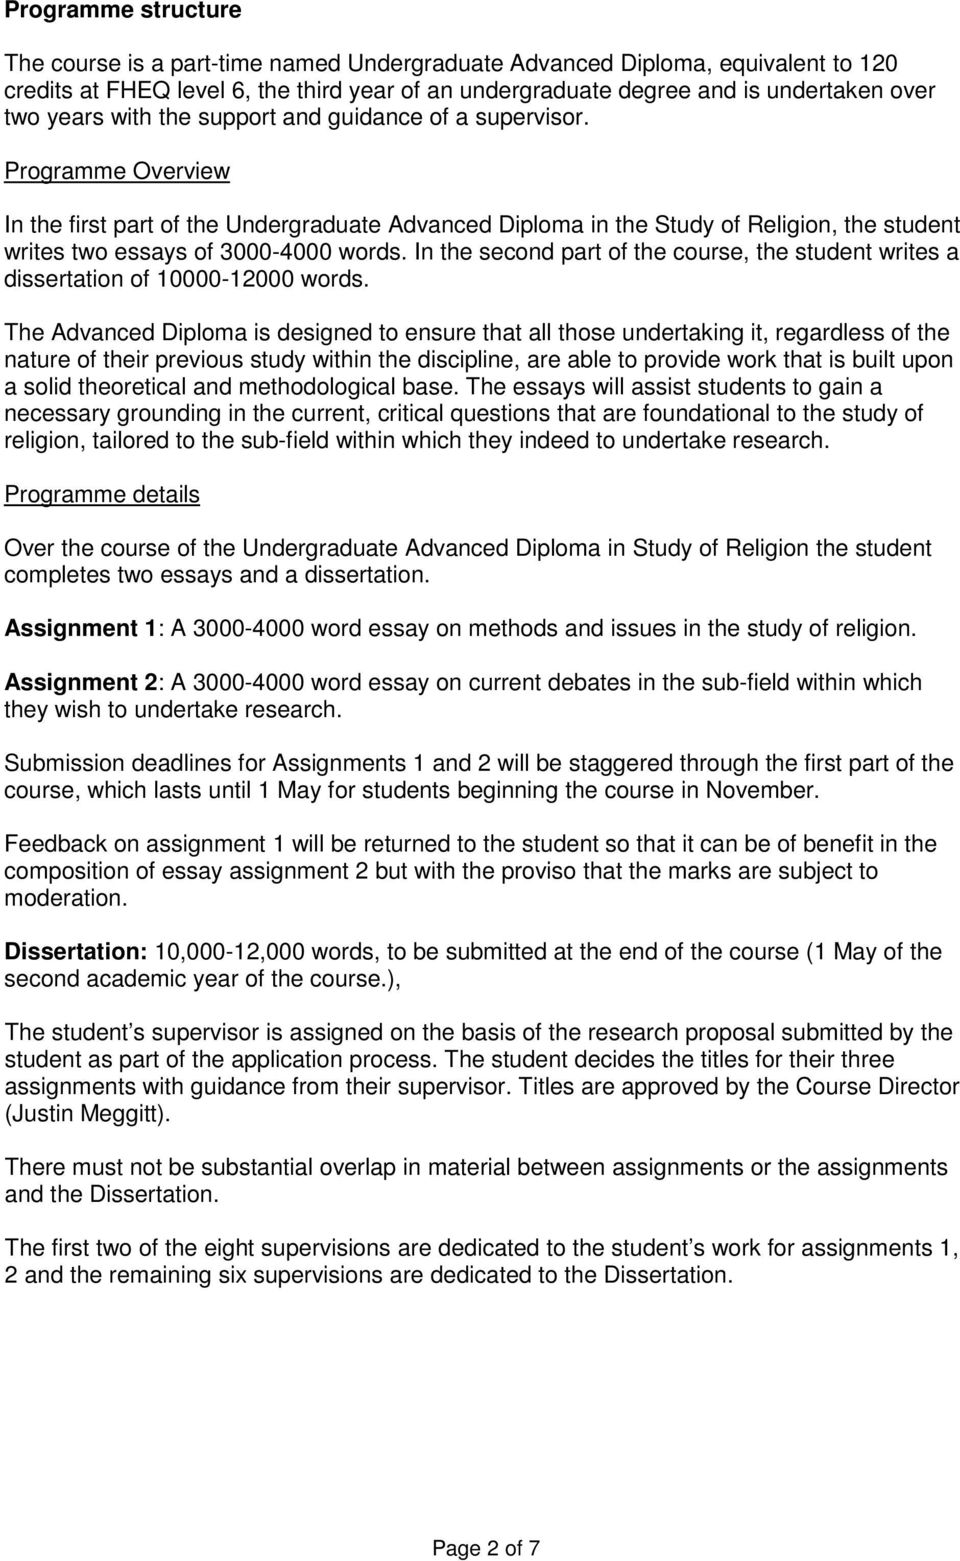 Programme Overview In the first part of the Undergraduate Advanced Diploma in the Study of Religion, the student writes two essays of 3000-4000 words.